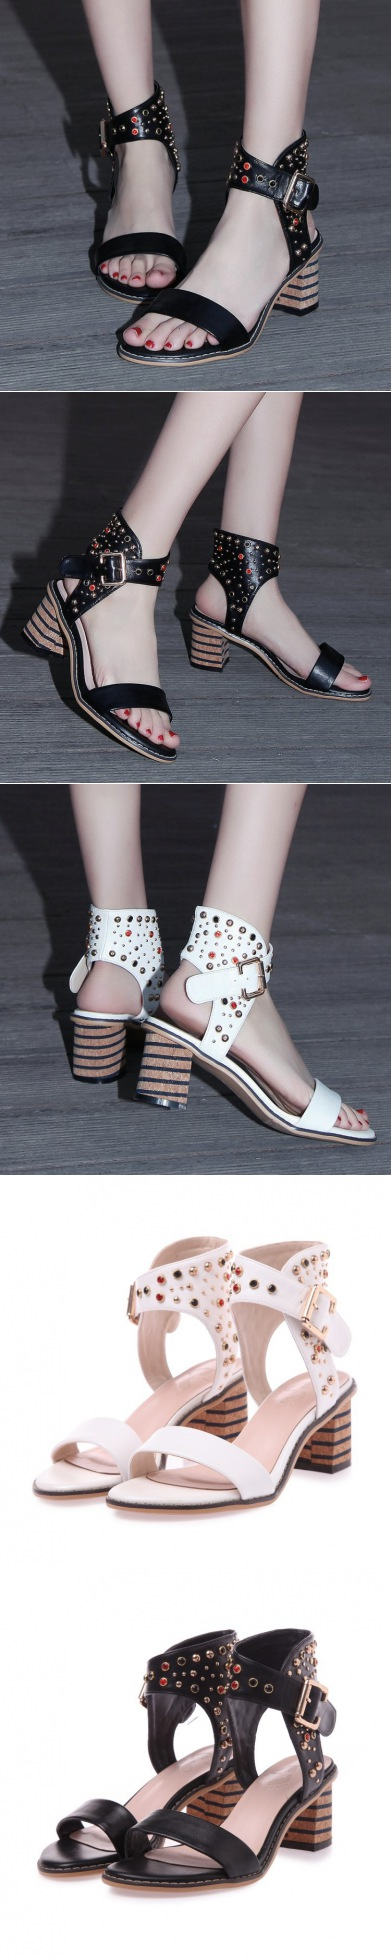 Wedding Event Chiseled Sandals For The Purpose Of Spouse Sexiest Bridal Shoes…